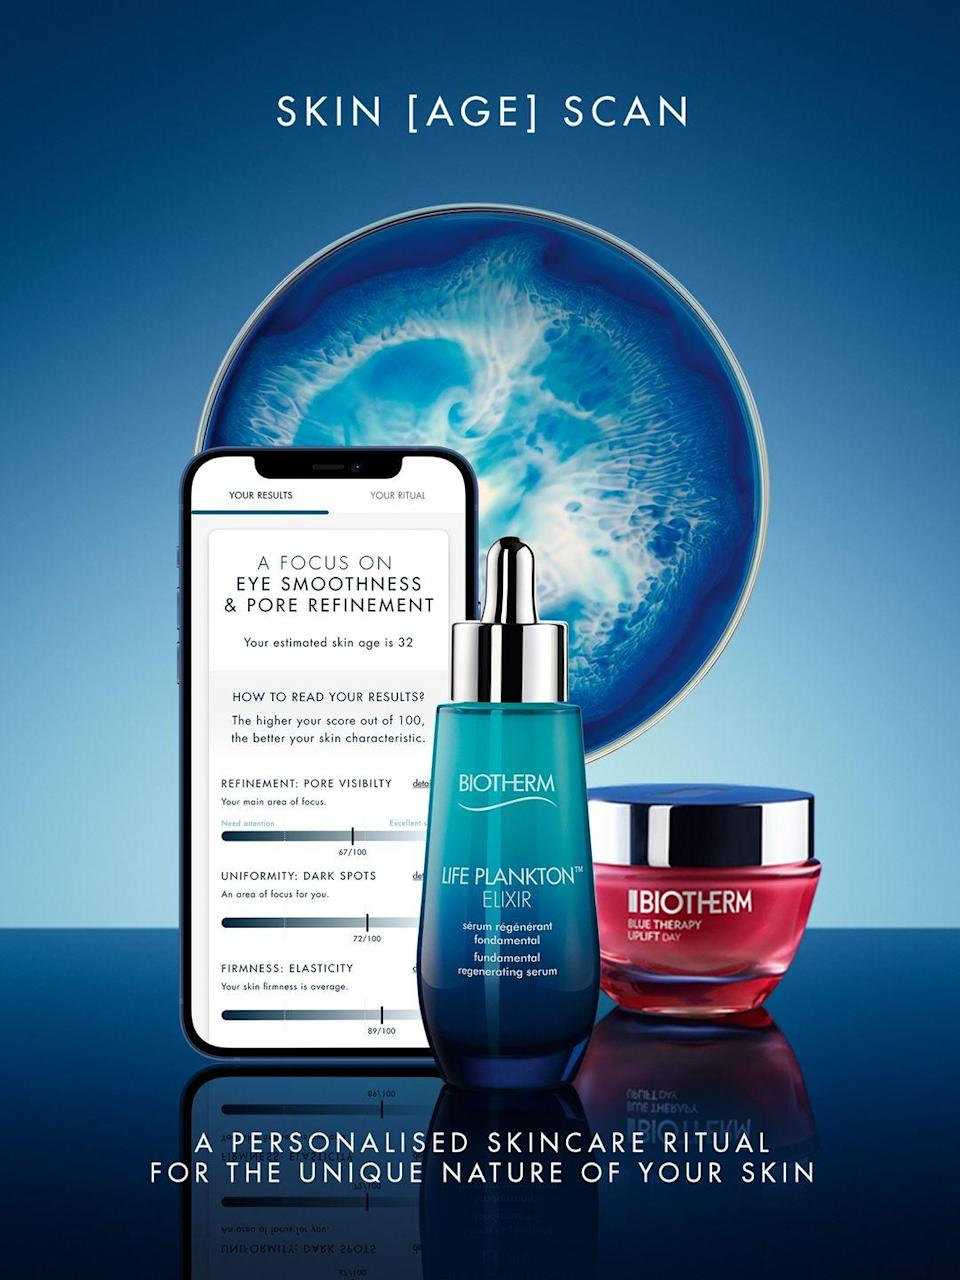 Photo credit: Courtesy of Biotherm